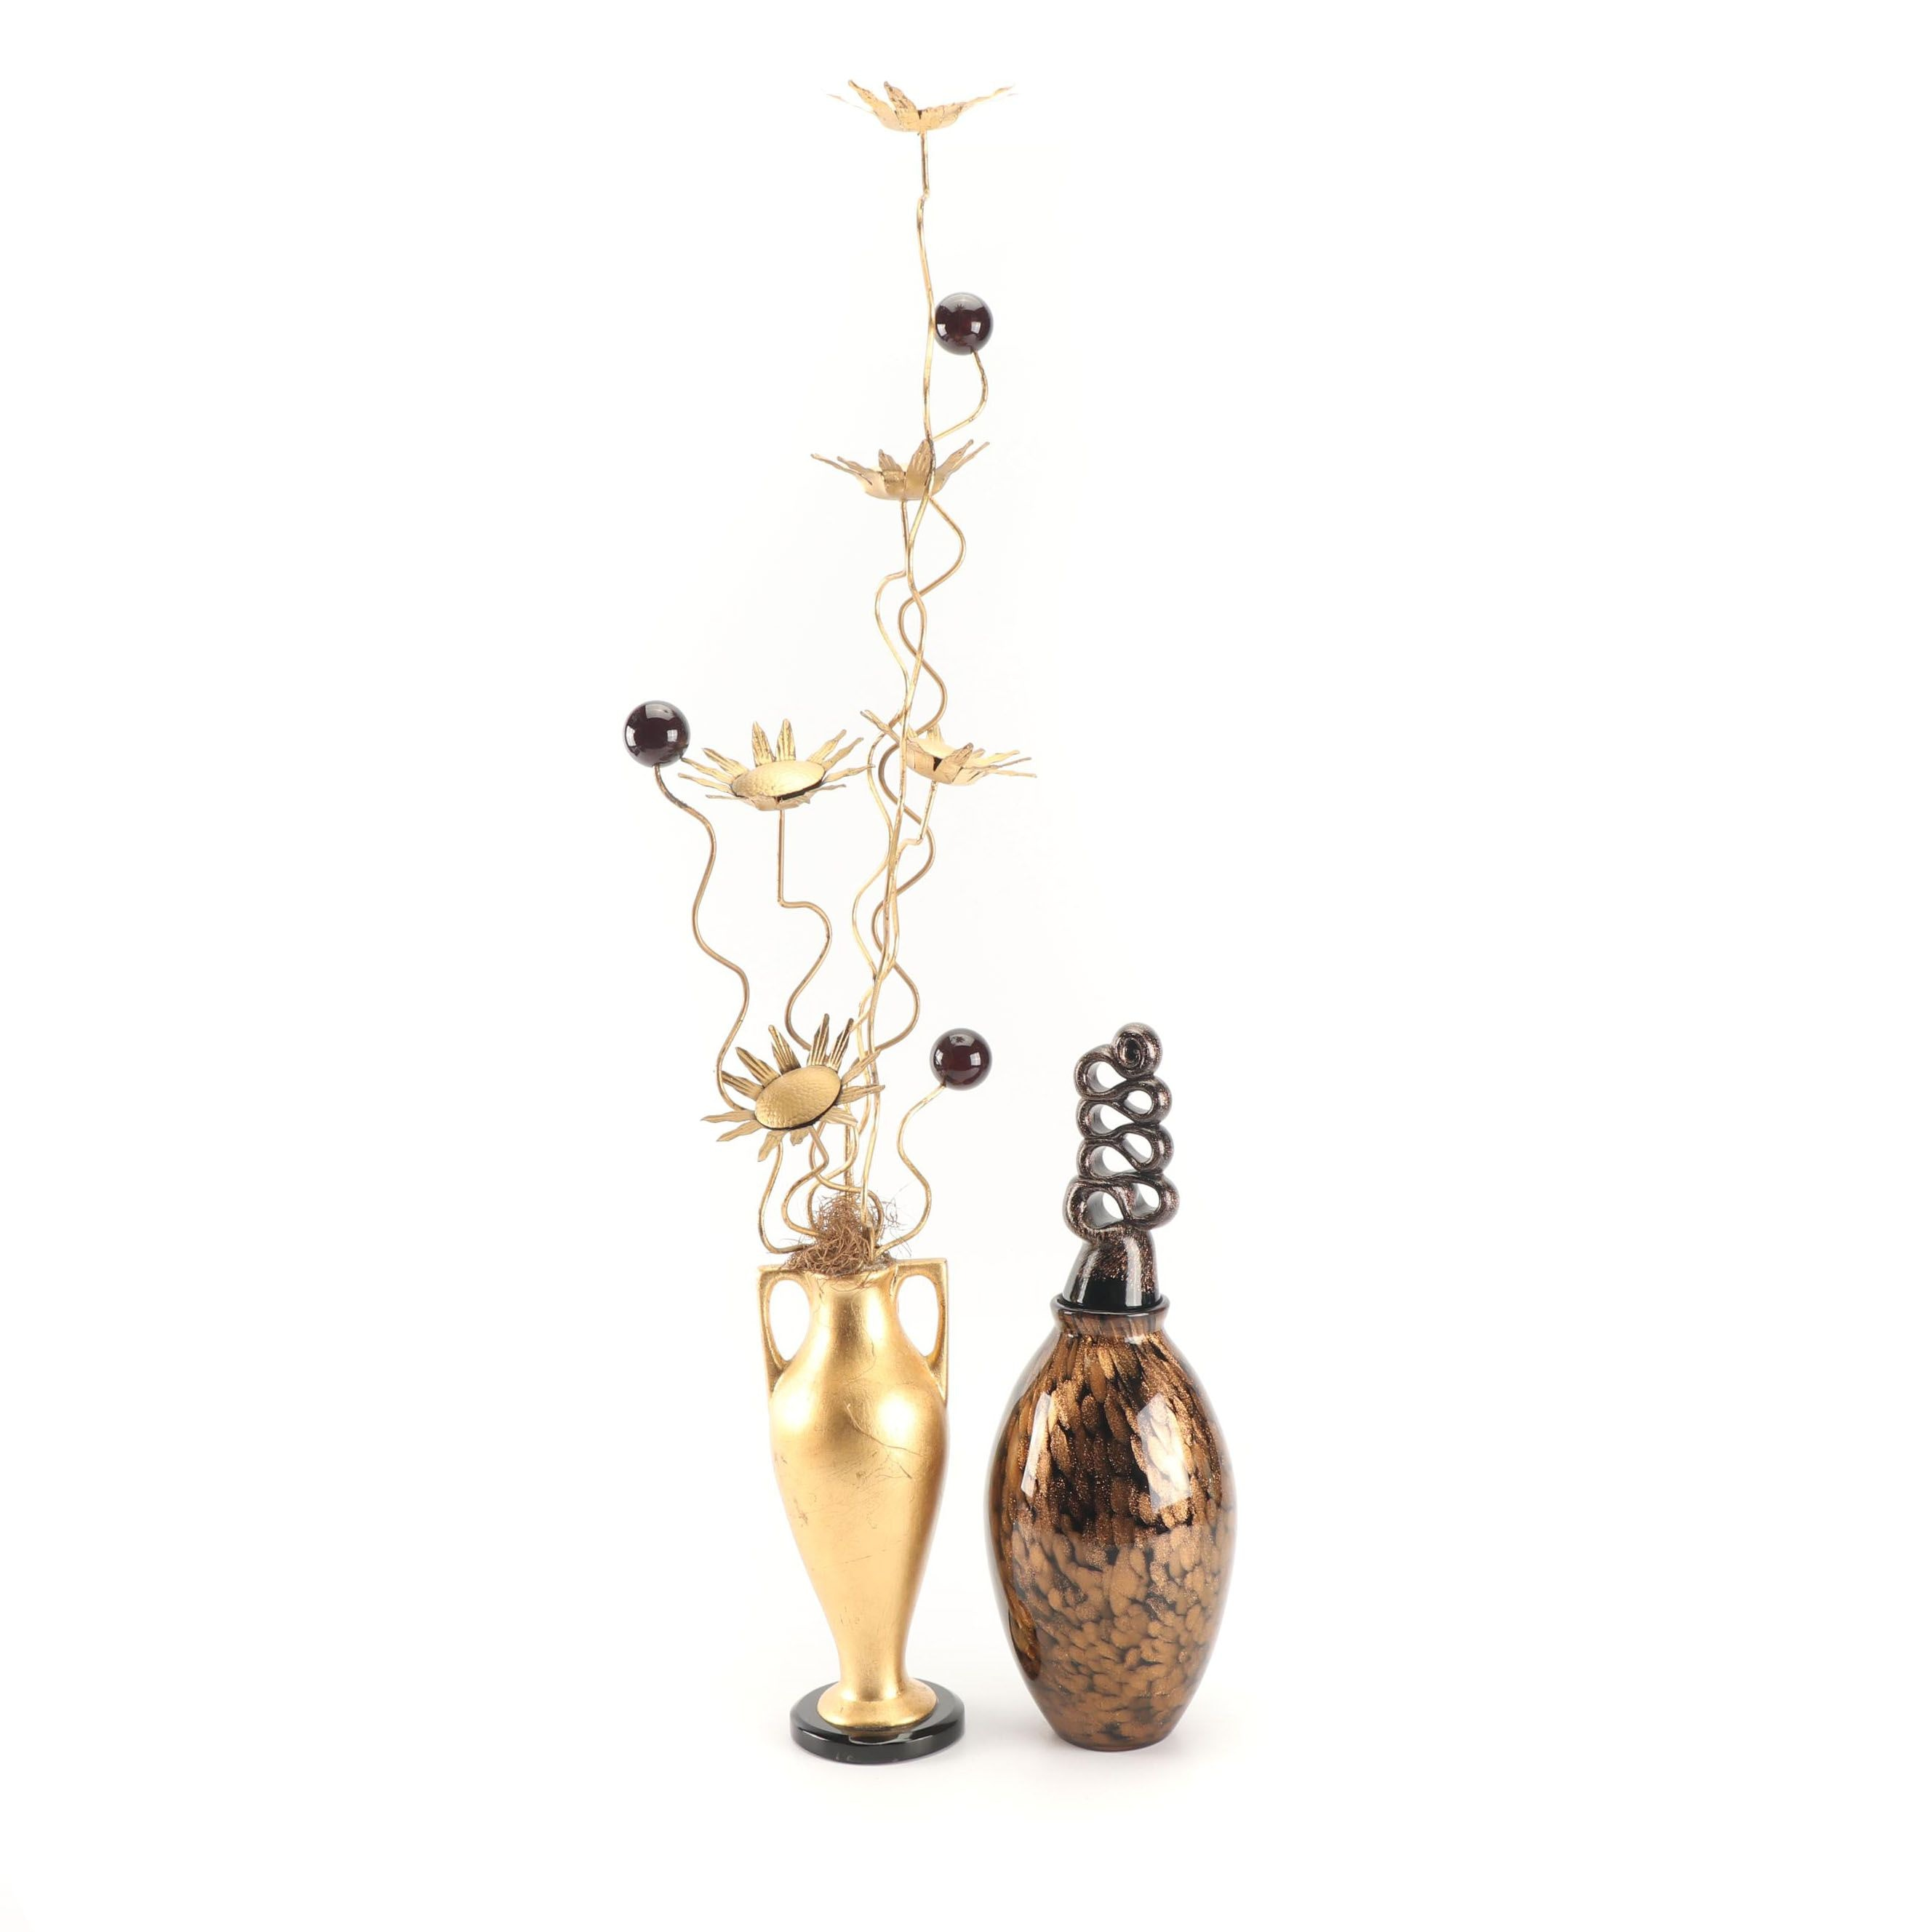 Fusion Art Glass Decanter and Sculptural Flowers in Metallic Vase